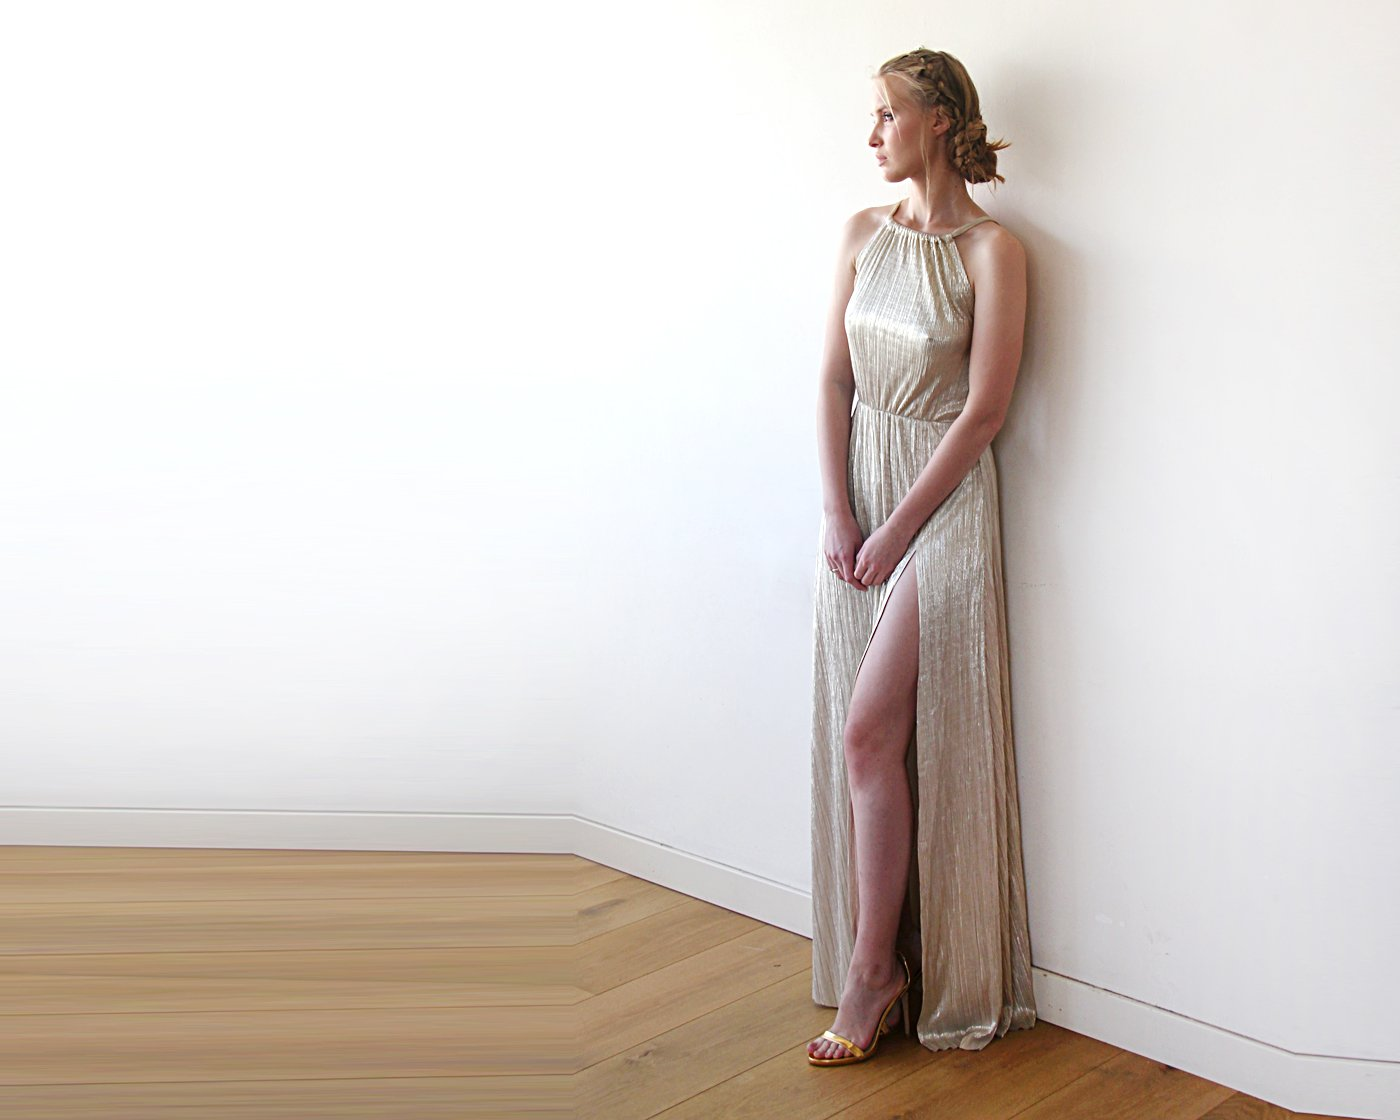 Group order for Danielle: Pleated Halter Neck Sleeveless Maxi Dress, Metallic Gold Dress 1200